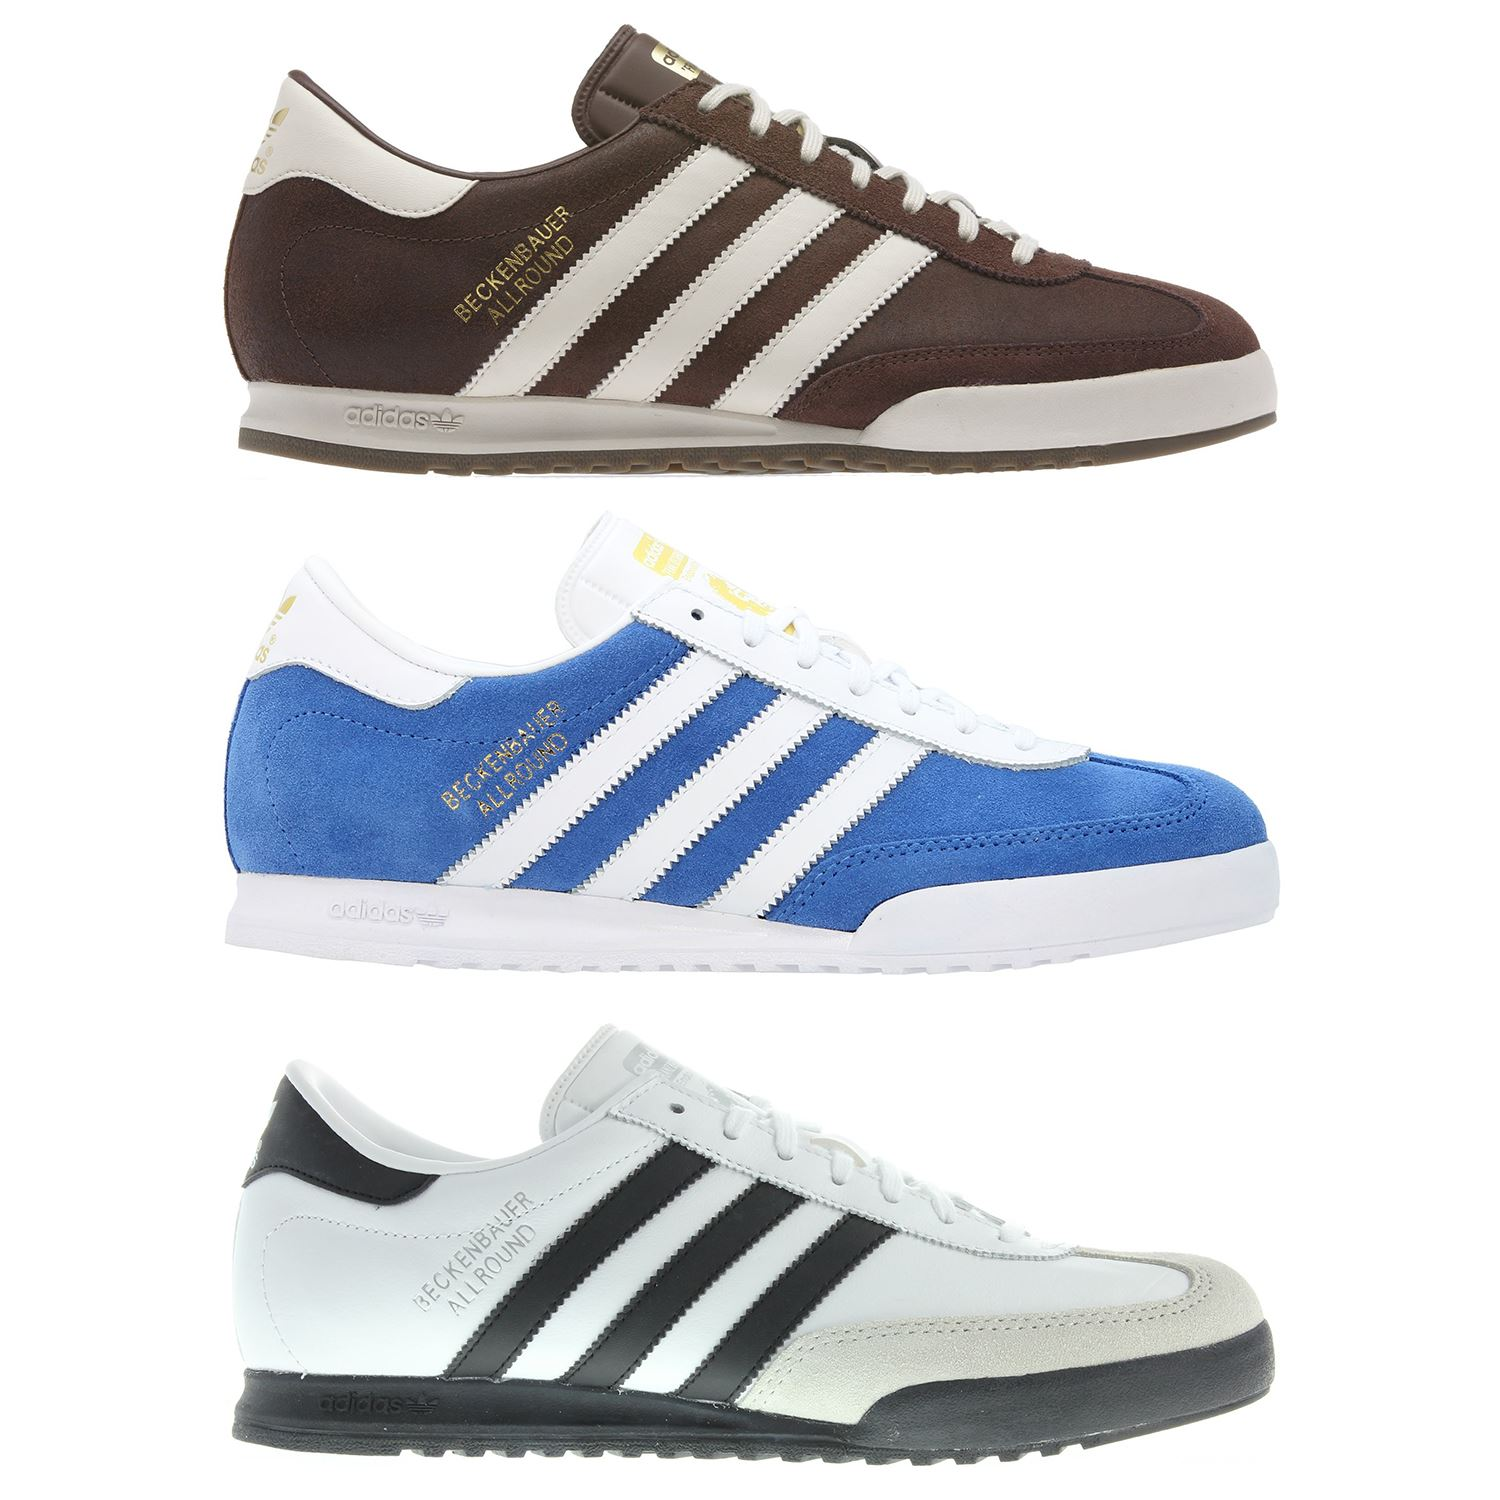 check out 5628d f9c16 Adidas Originals HOMME Baskets Beckenbauer Allround Bleu Blanche Noir Brun